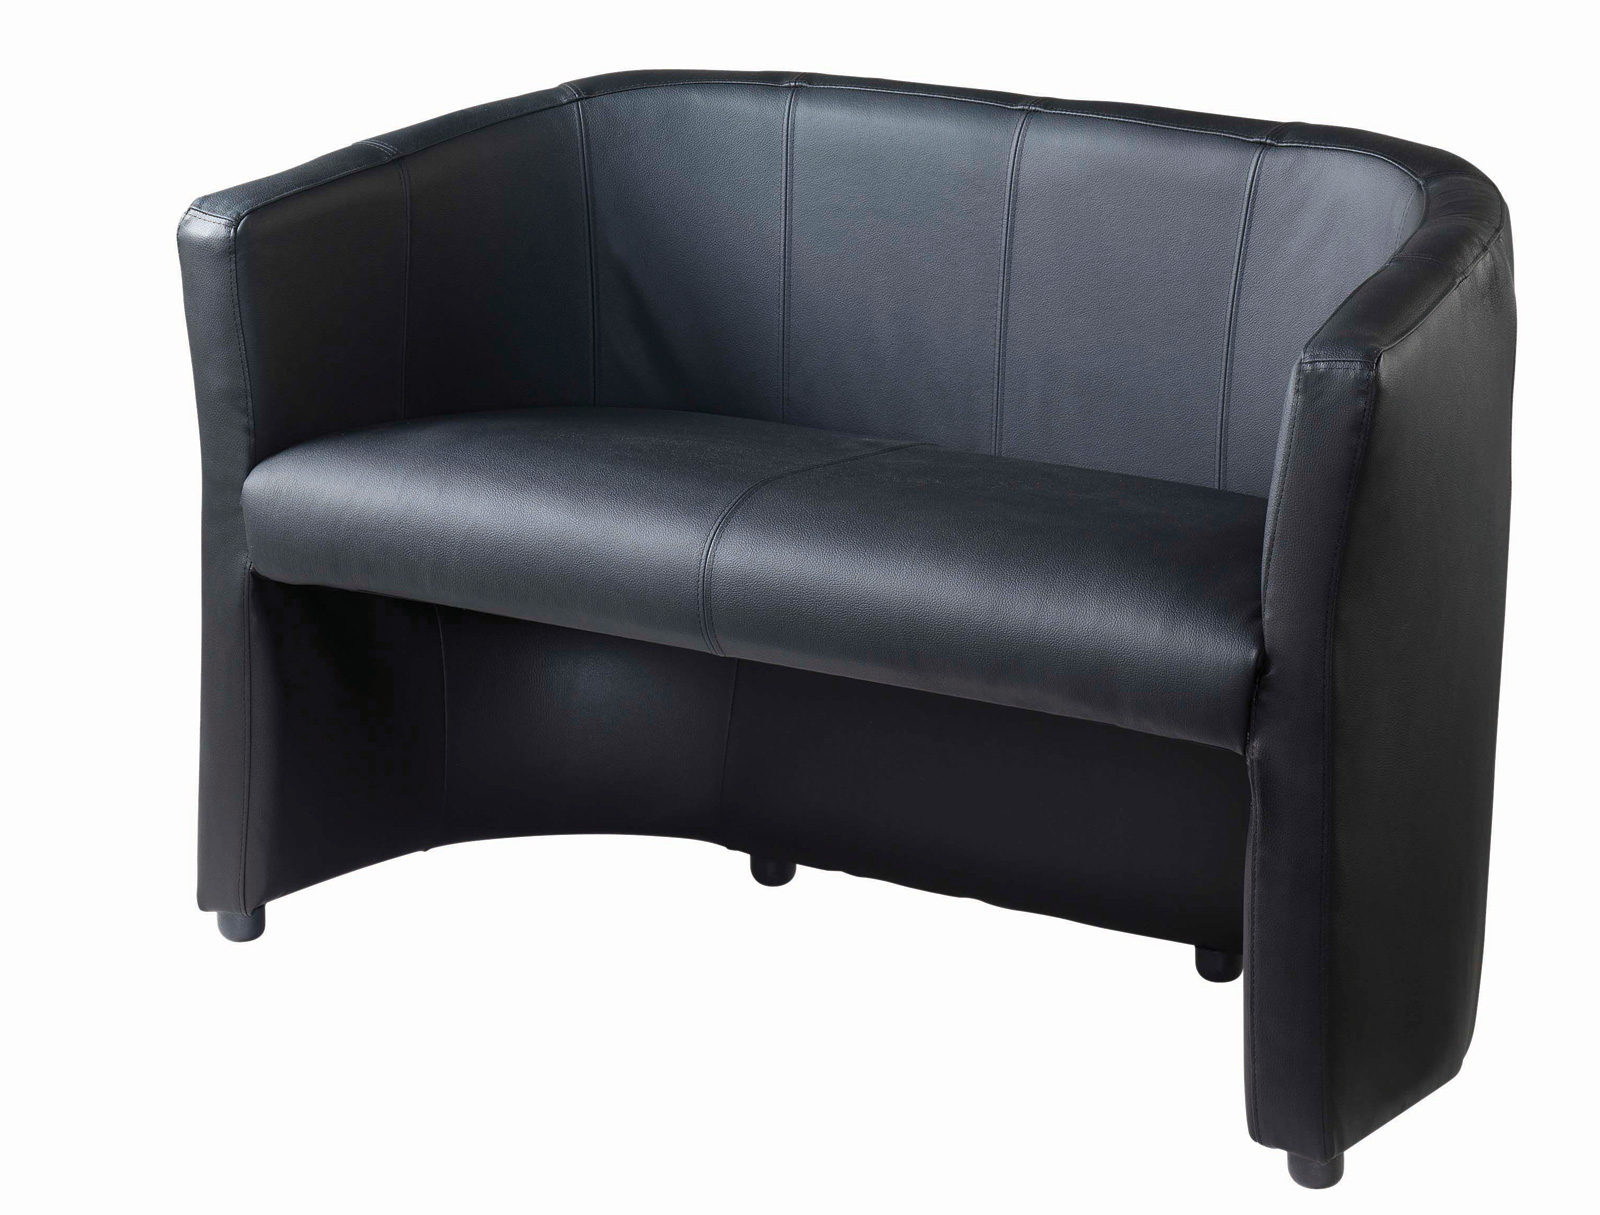 London Optical Sofa Chairs For Well Known London Leather Faced Reception Seating 2 Seater: Www (View 8 of 20)